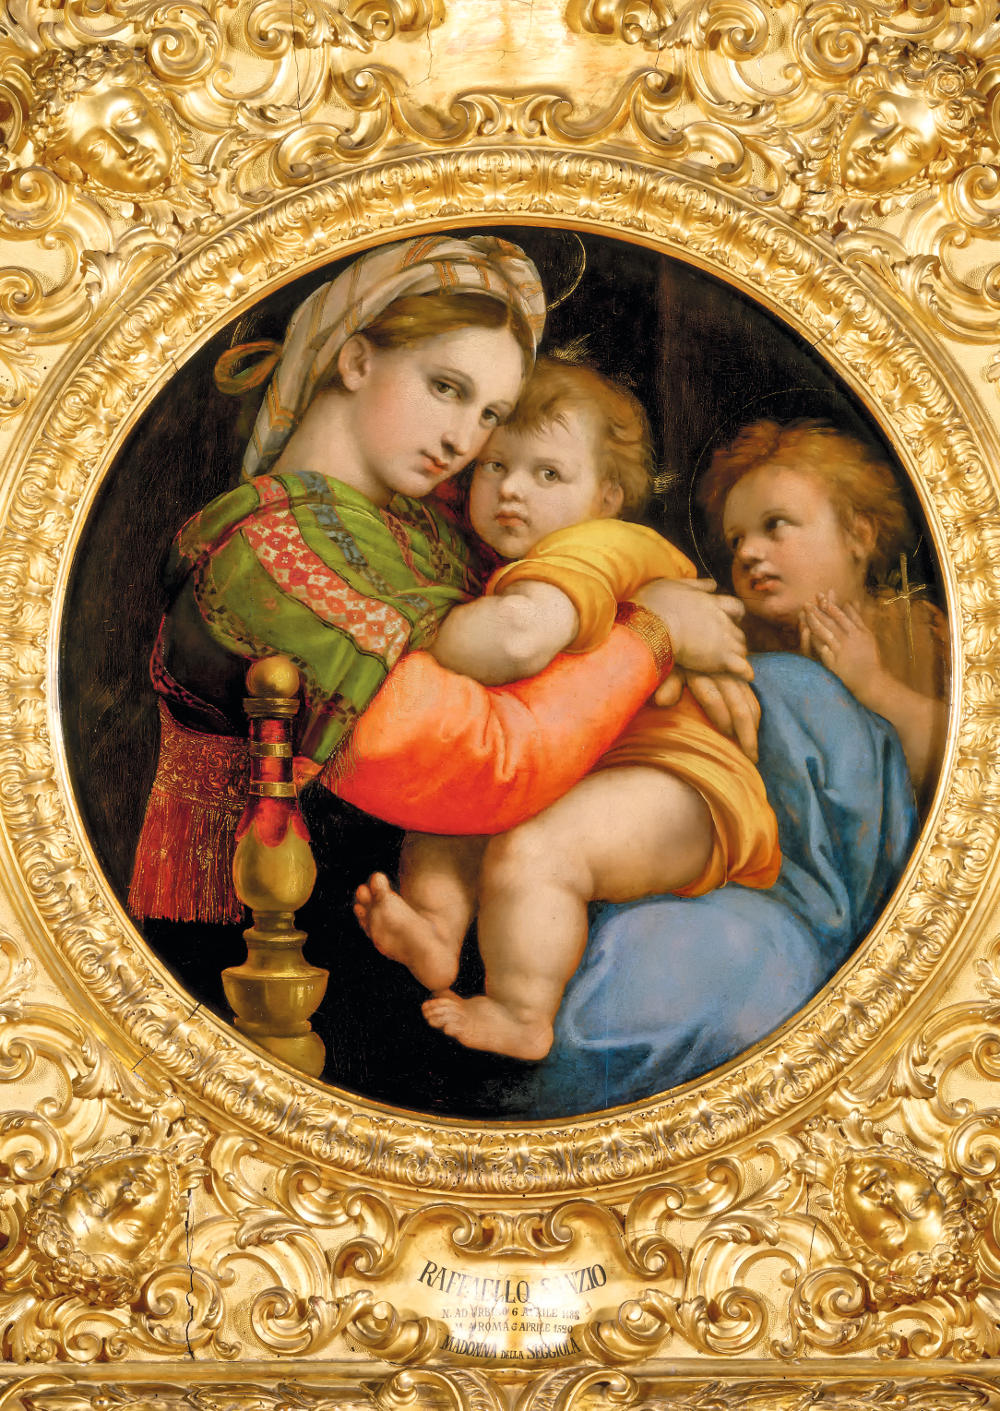 Raphael (1483-1520): Madonna della Seggiola (Madonna of the Chair). Florence, Galleria Palatina*** Permission for usage must be provided in writing from Scala. ***